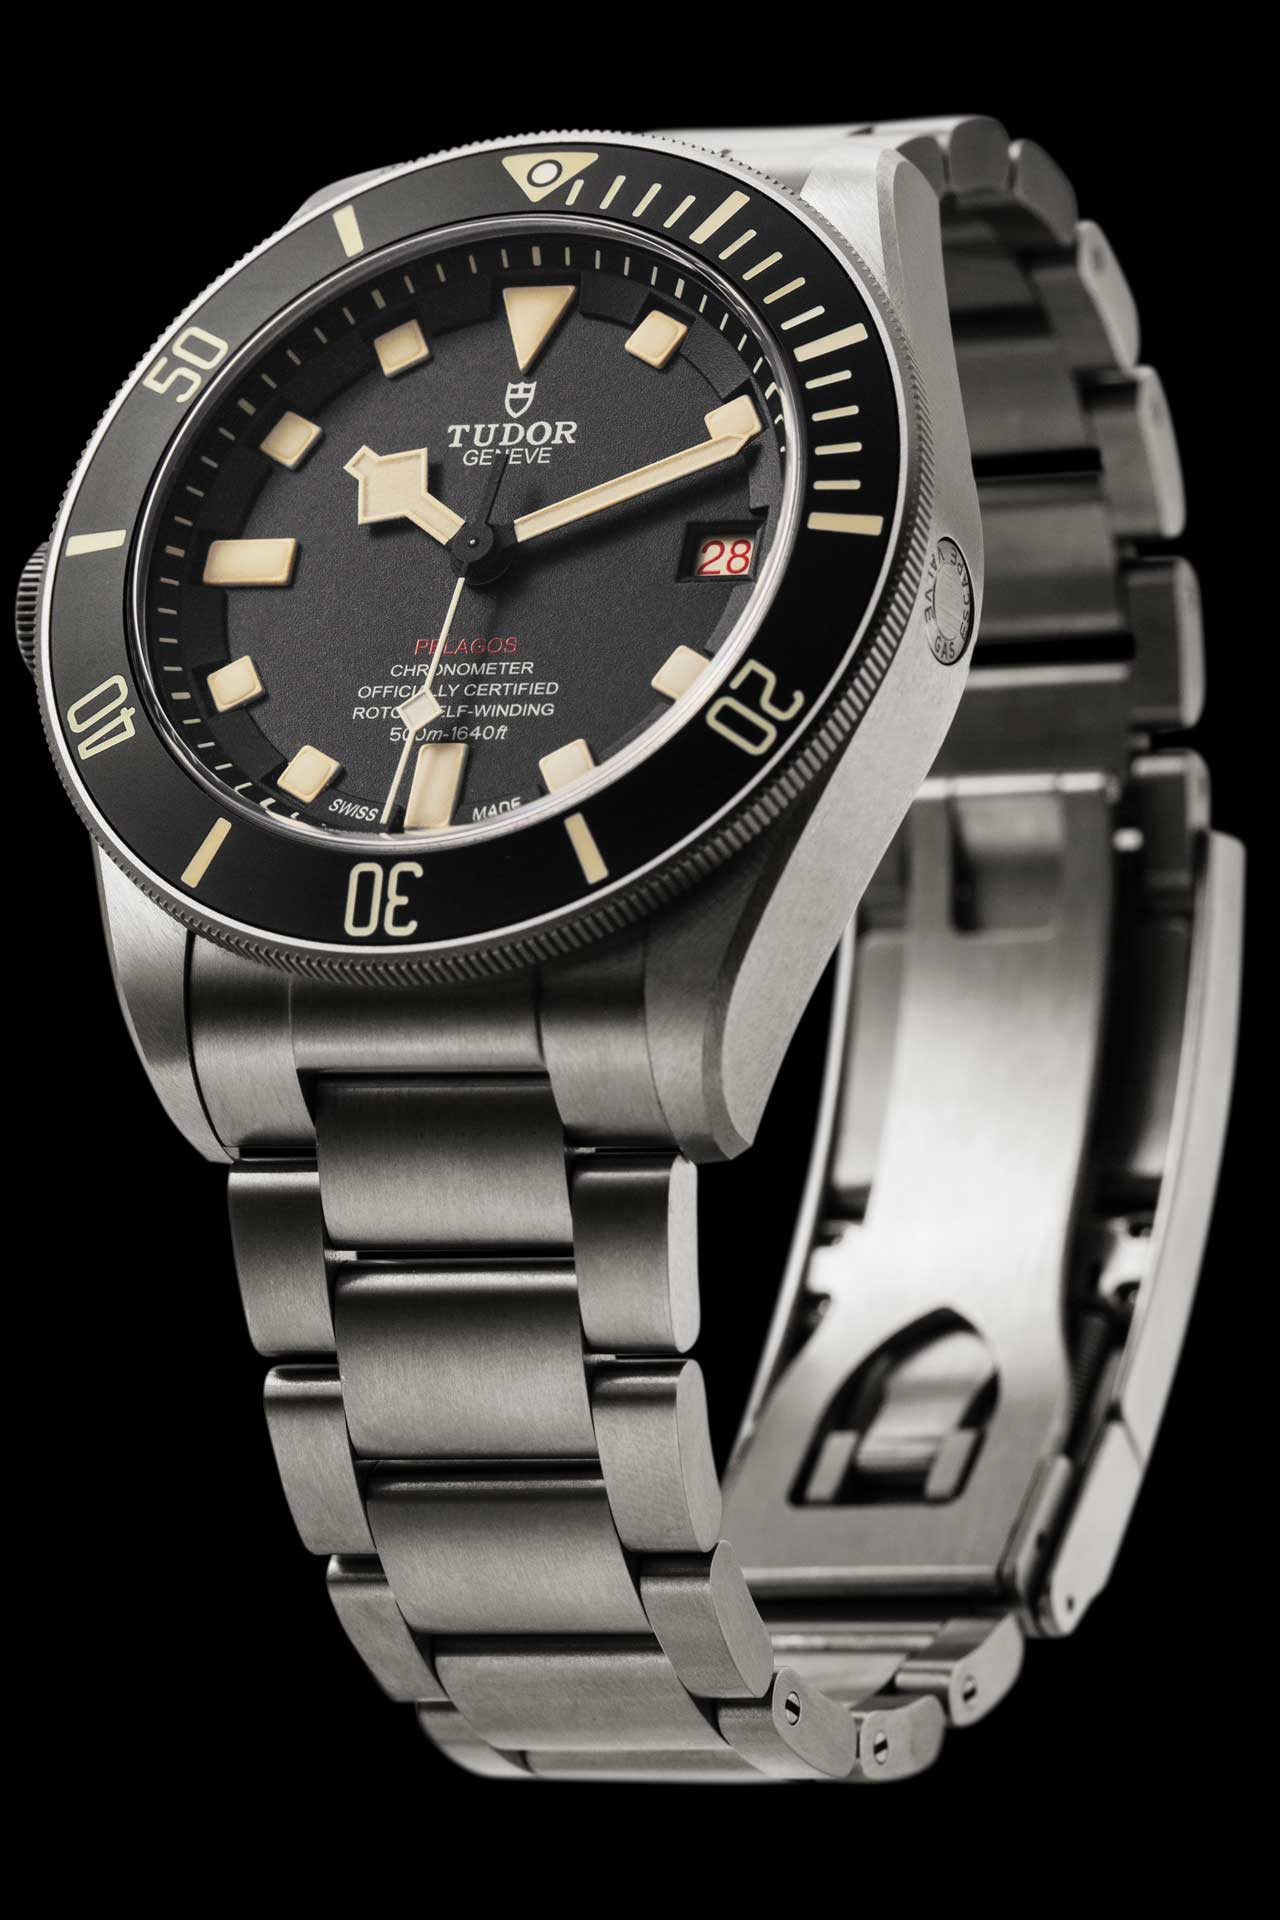 tudor pelagos lhd god is in the details revolution watch